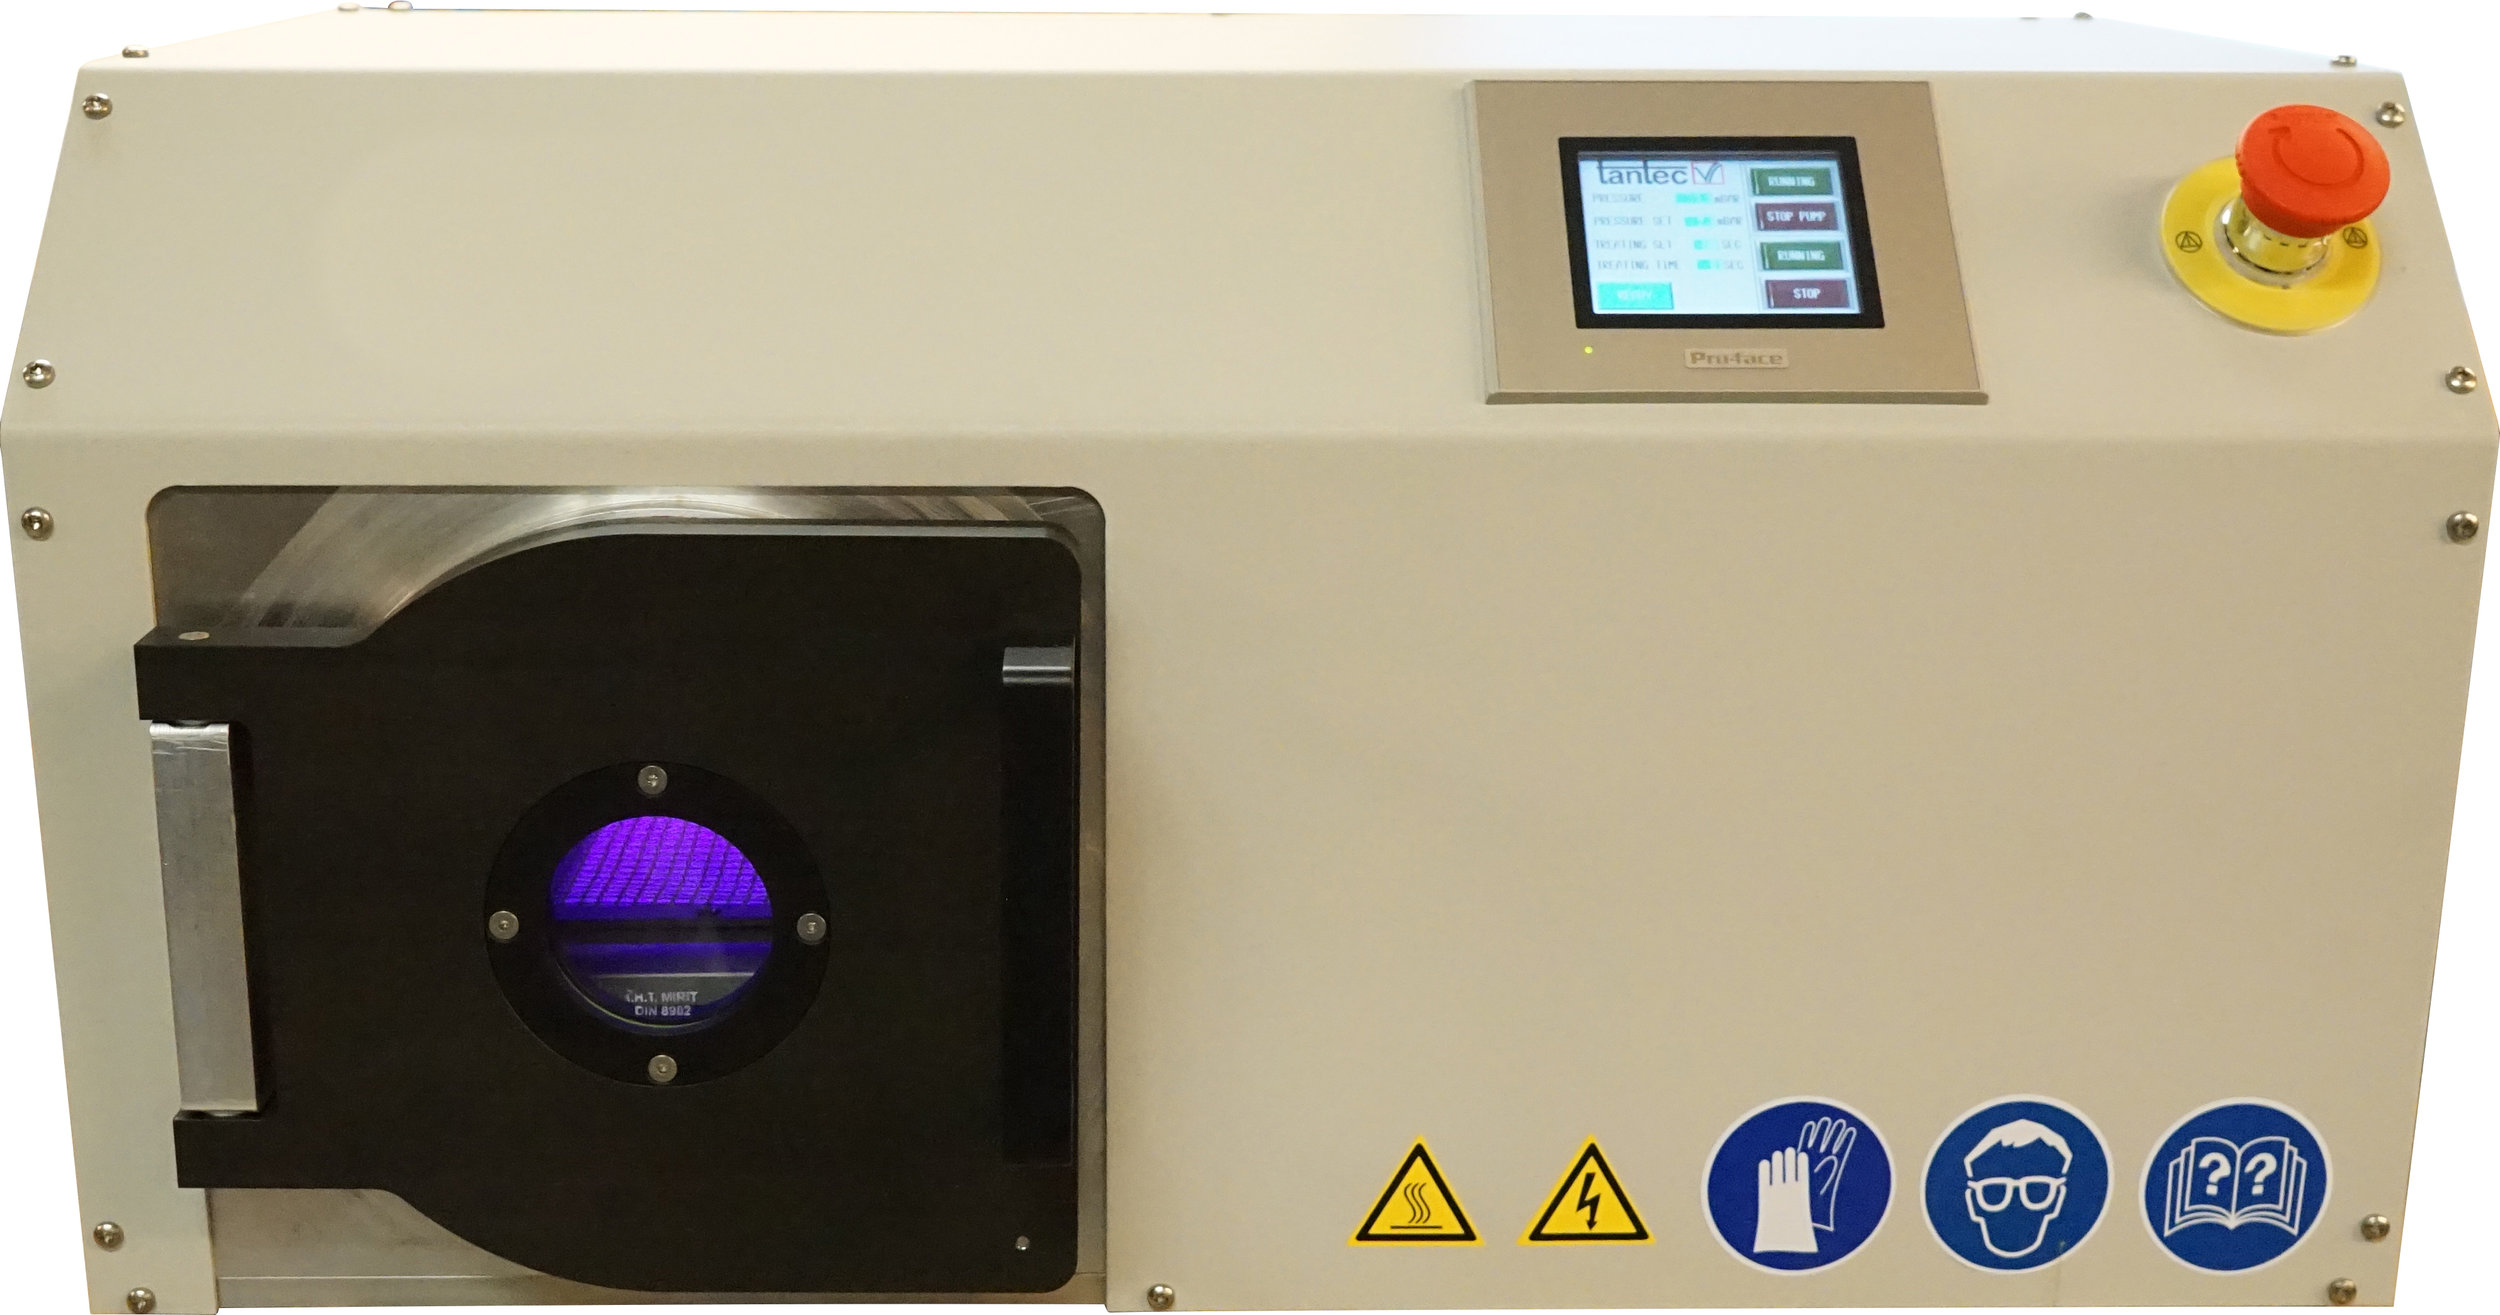 Vaculab - A lab/ low production system, the VacuLAB is easy to move, quick to set up and provides most of the functionality of the larger machines at entry level costs.